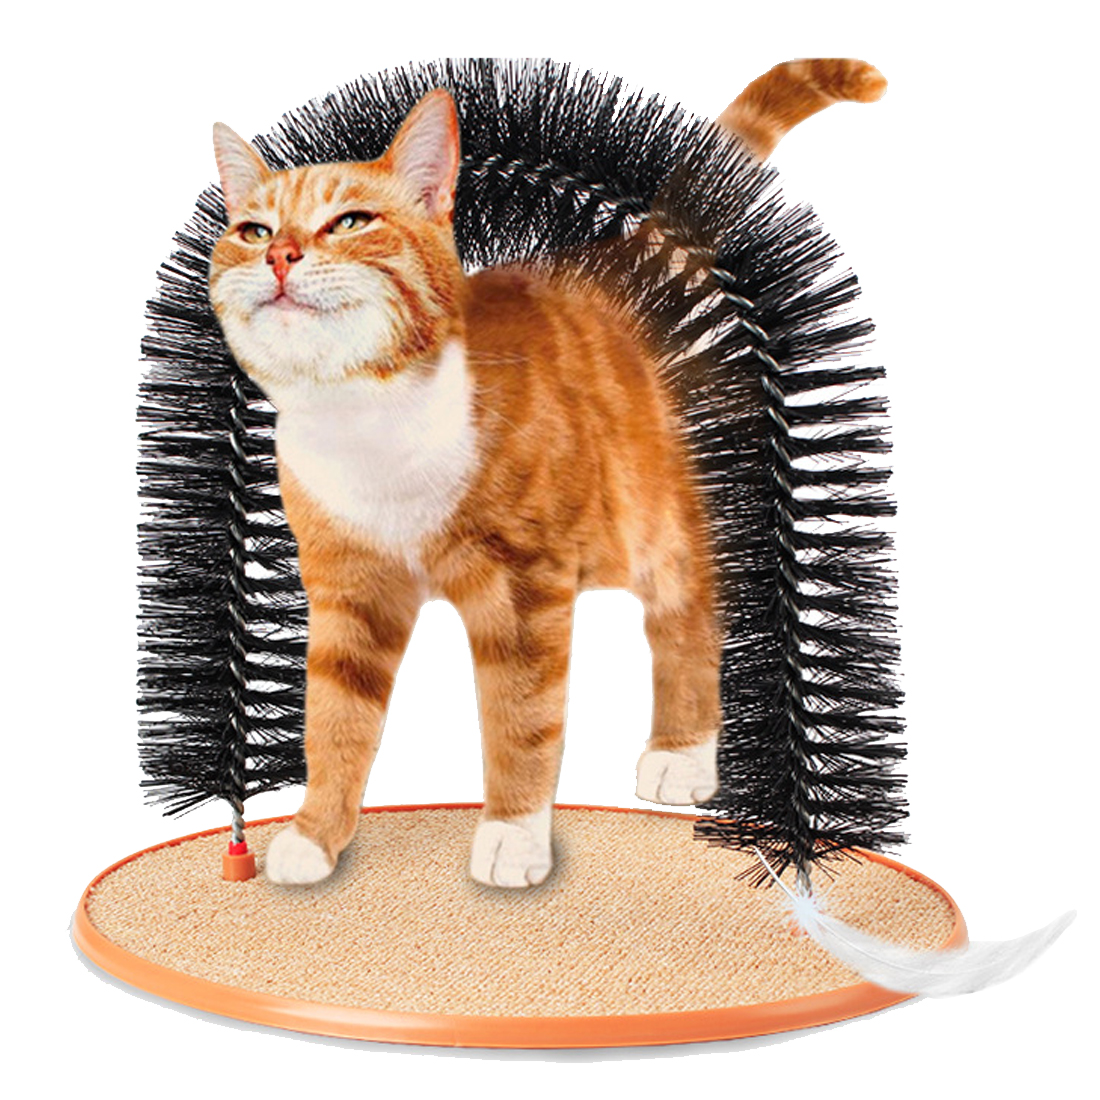 Home Arch Pet Cat Self Groomer With Round Fleece Base Cat Toy Brush Toys For Pets Scratching Devices